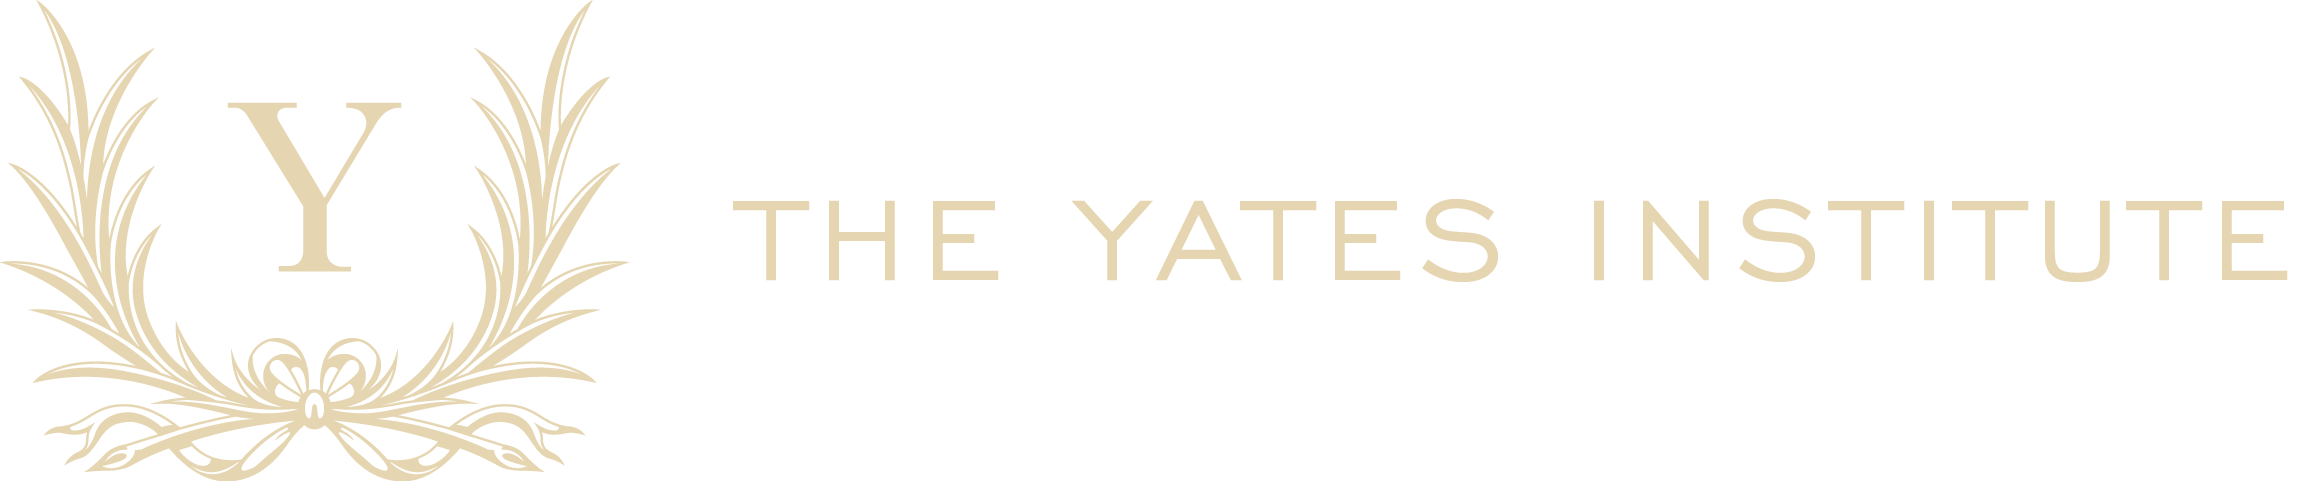 Yates Institute of Plastic Surgery